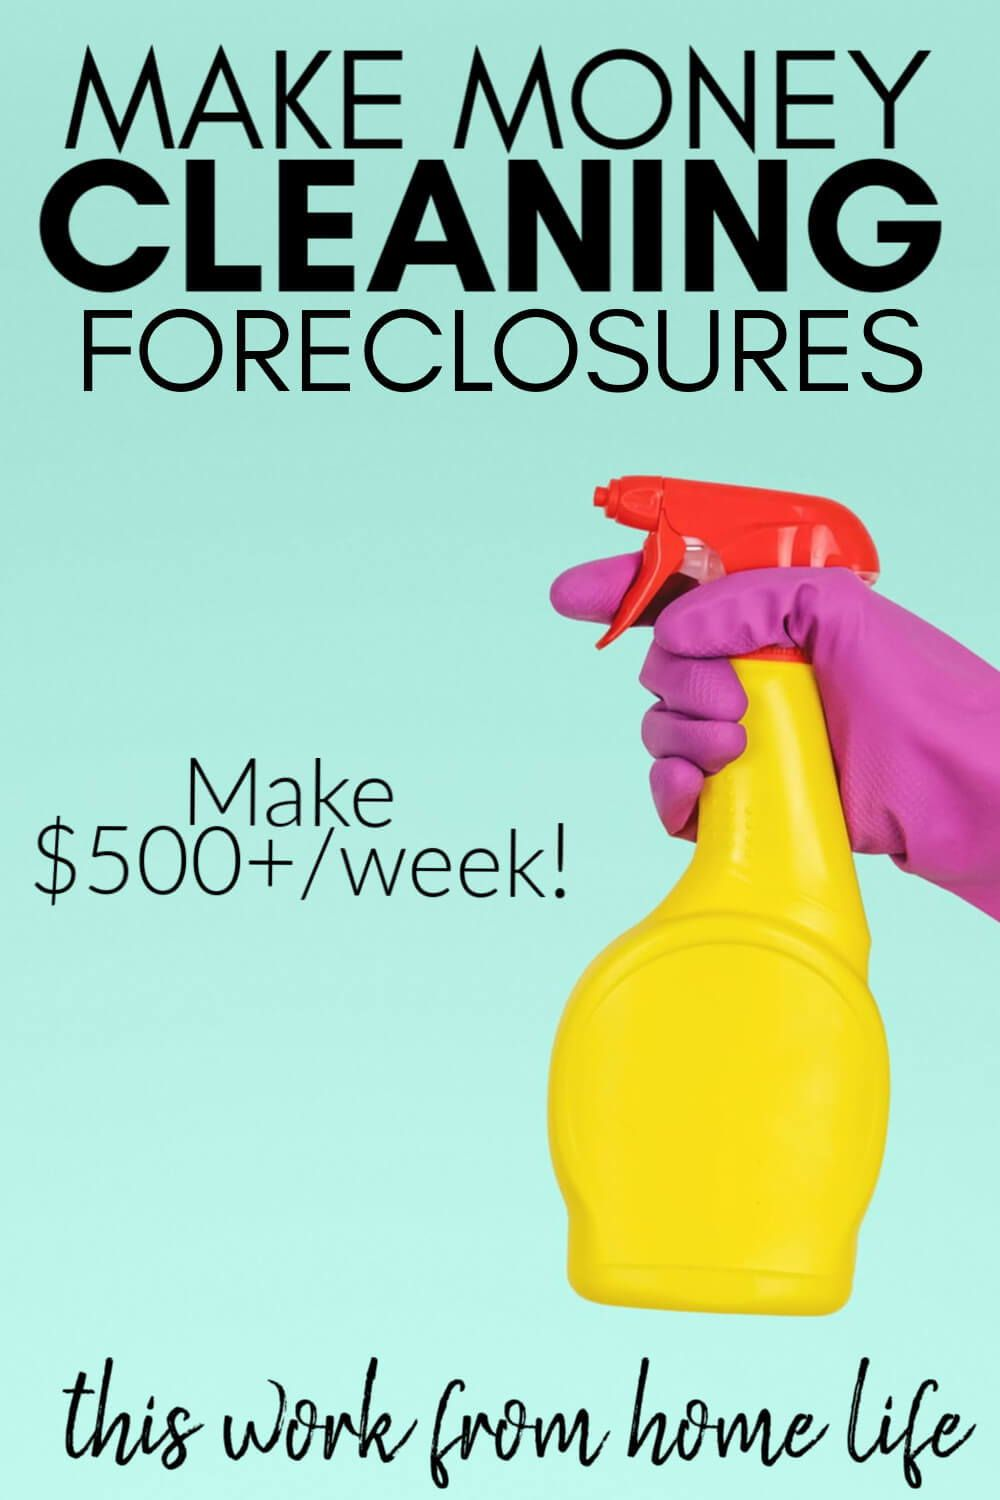 How To Start A Foreclosure Cleaning